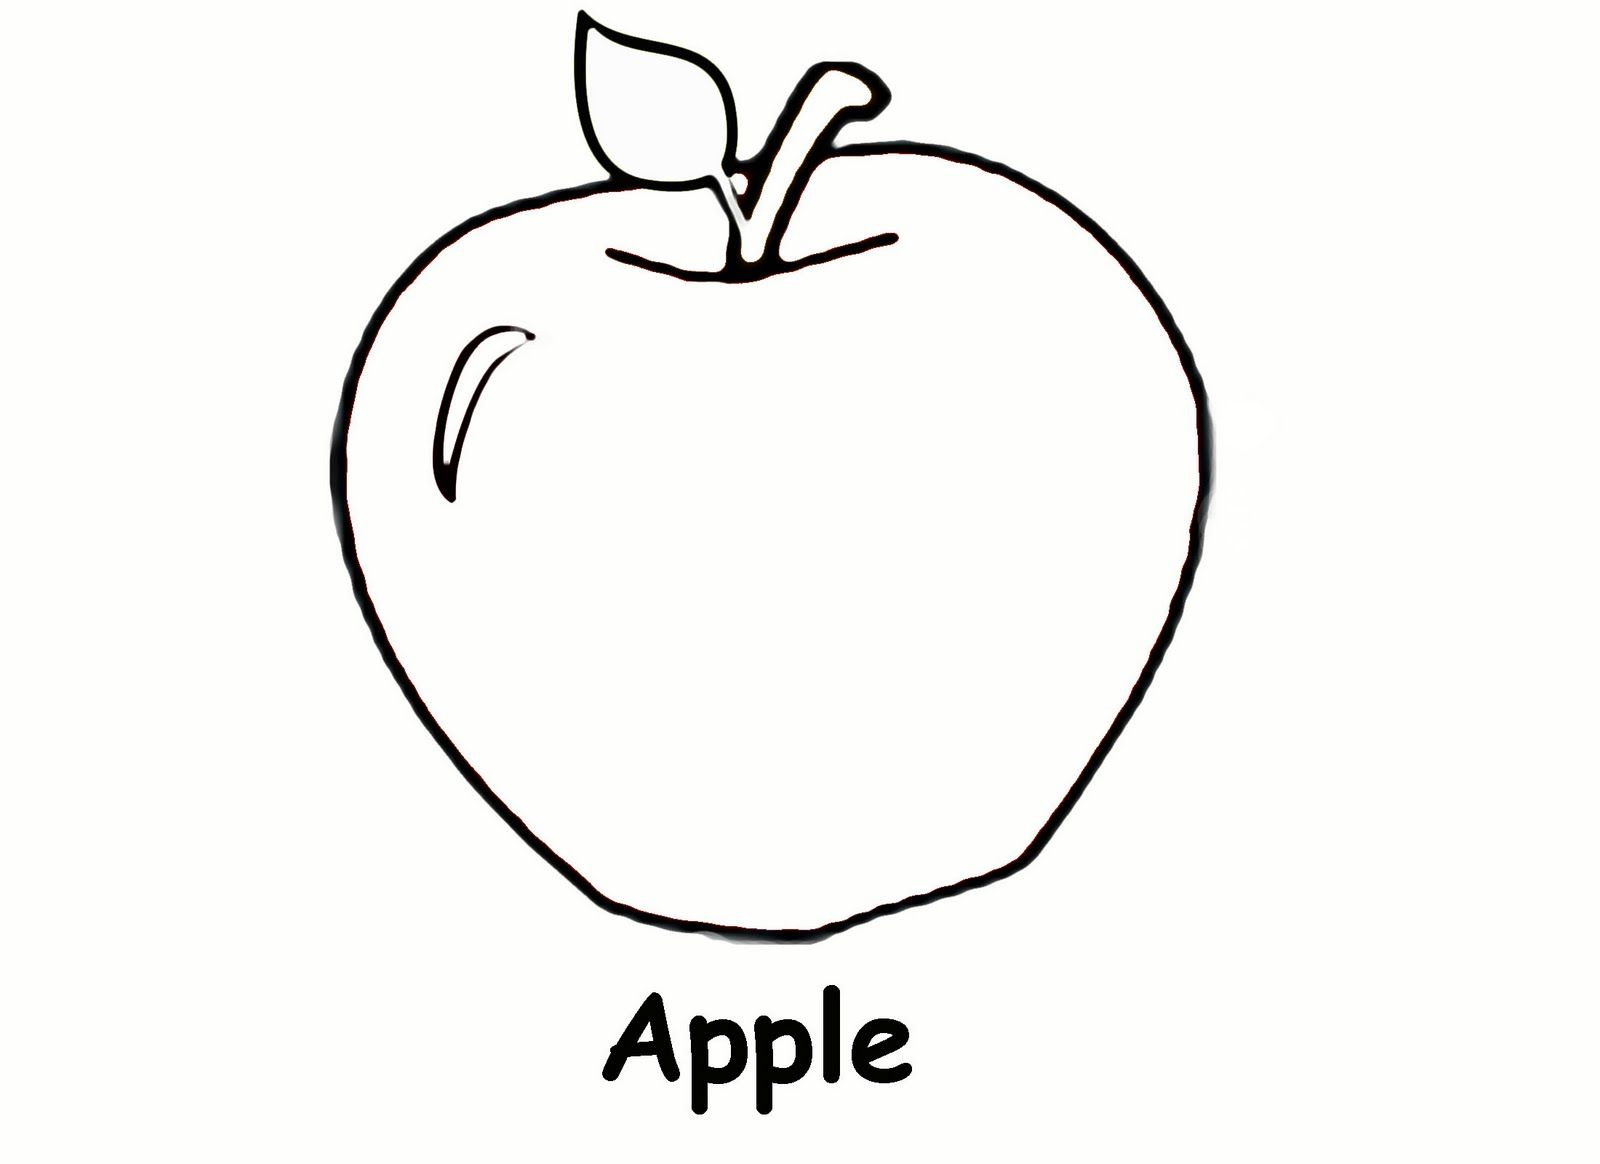 Free Printable Apple Coloring Pages For Kids Apple Coloring Pages Preschool Coloring Pages Coloring Pages For Girls